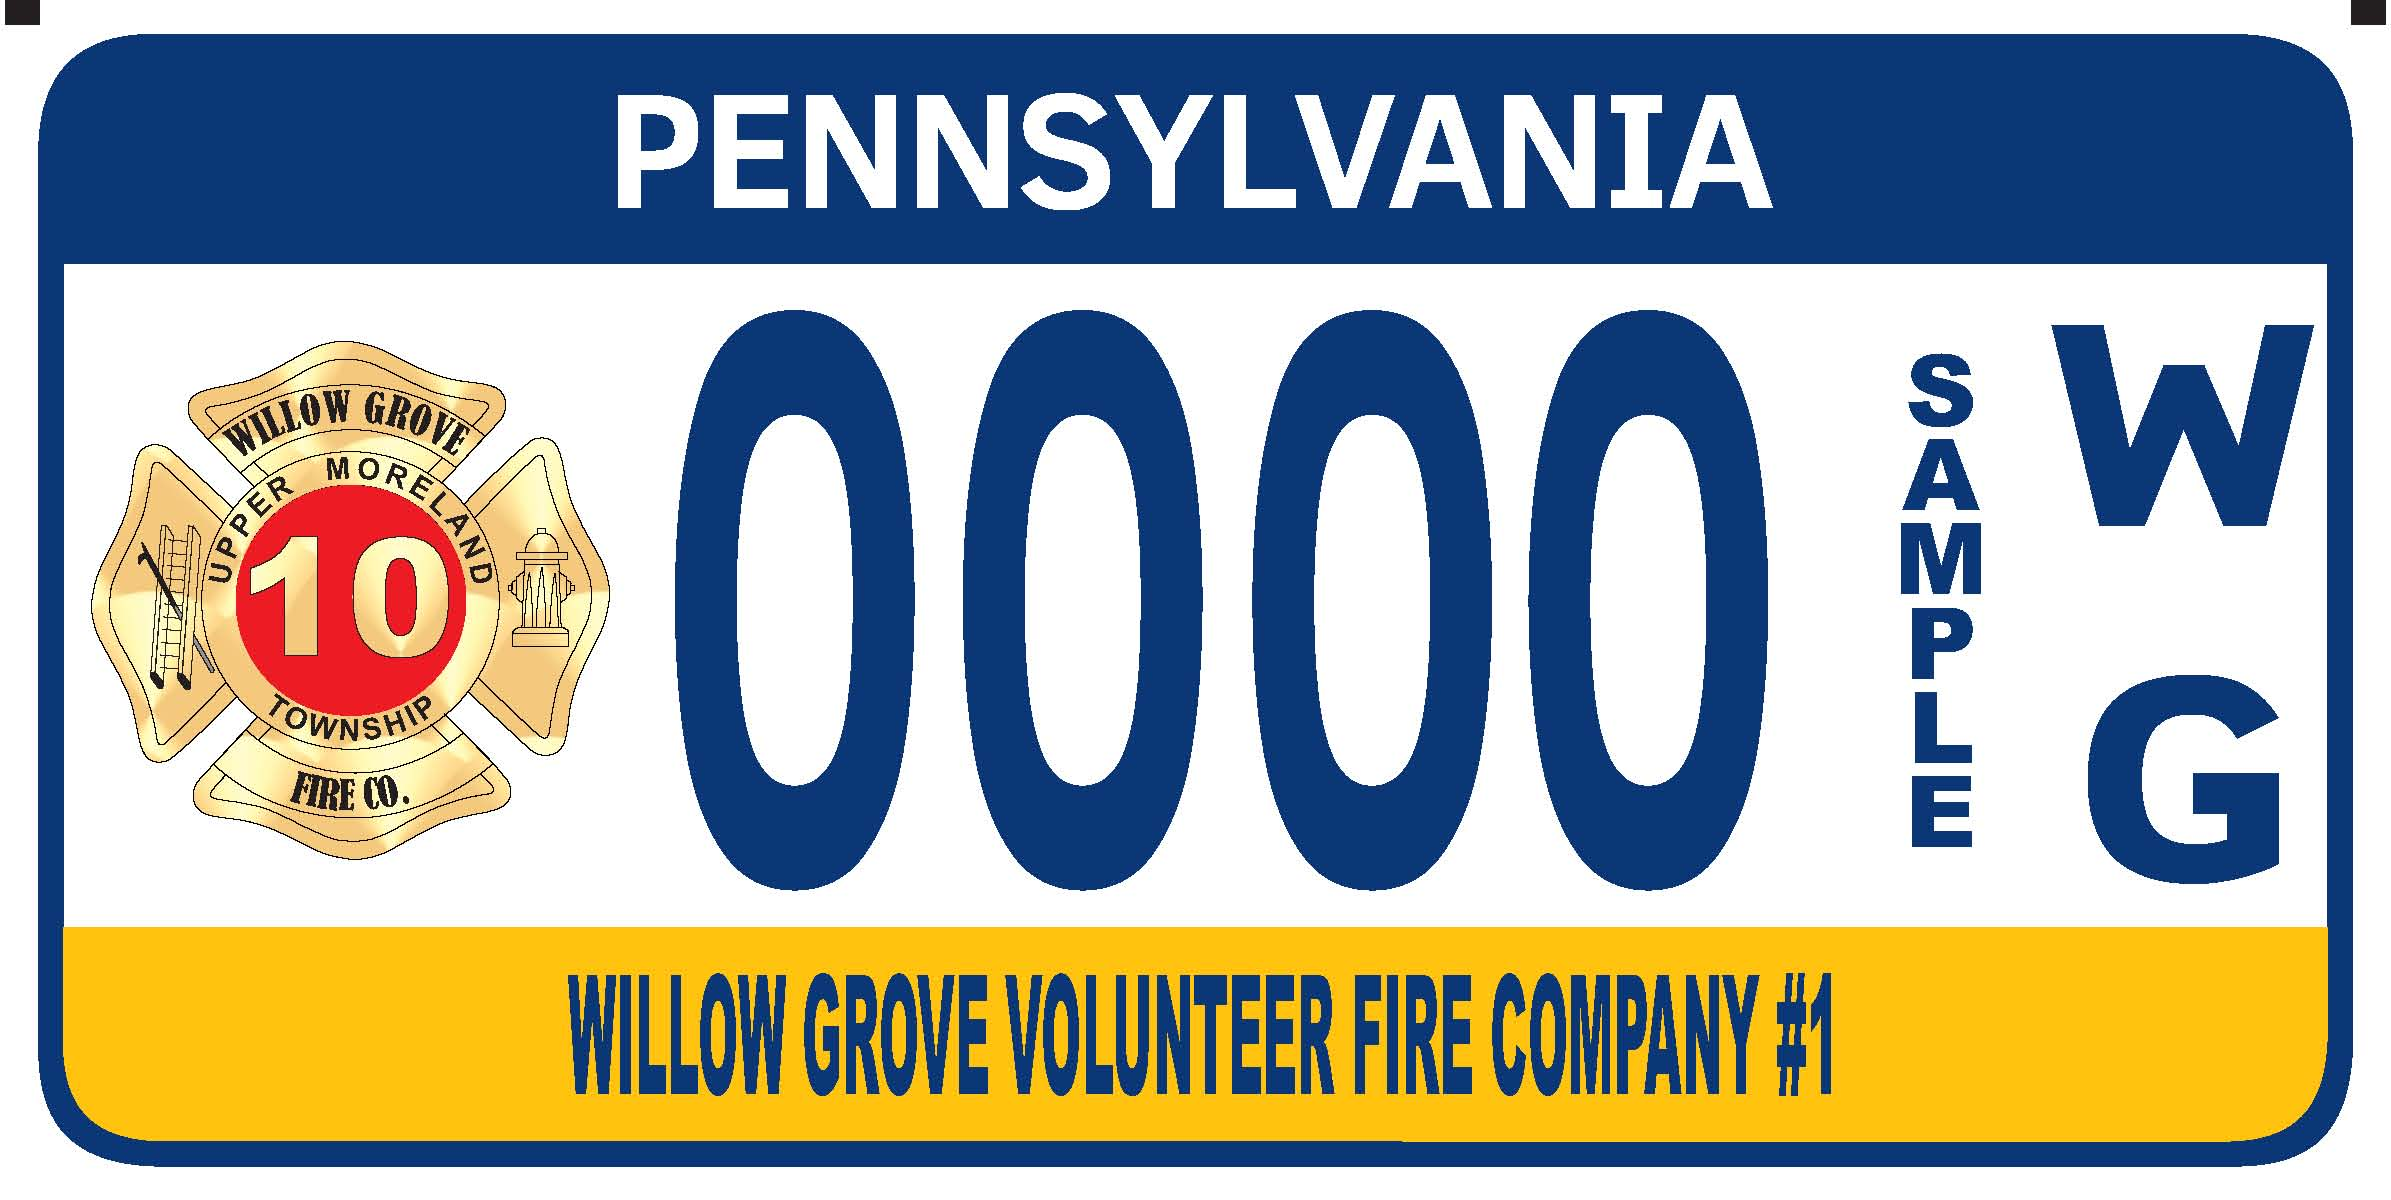 Willow Grove Volunteer Fire Company #1